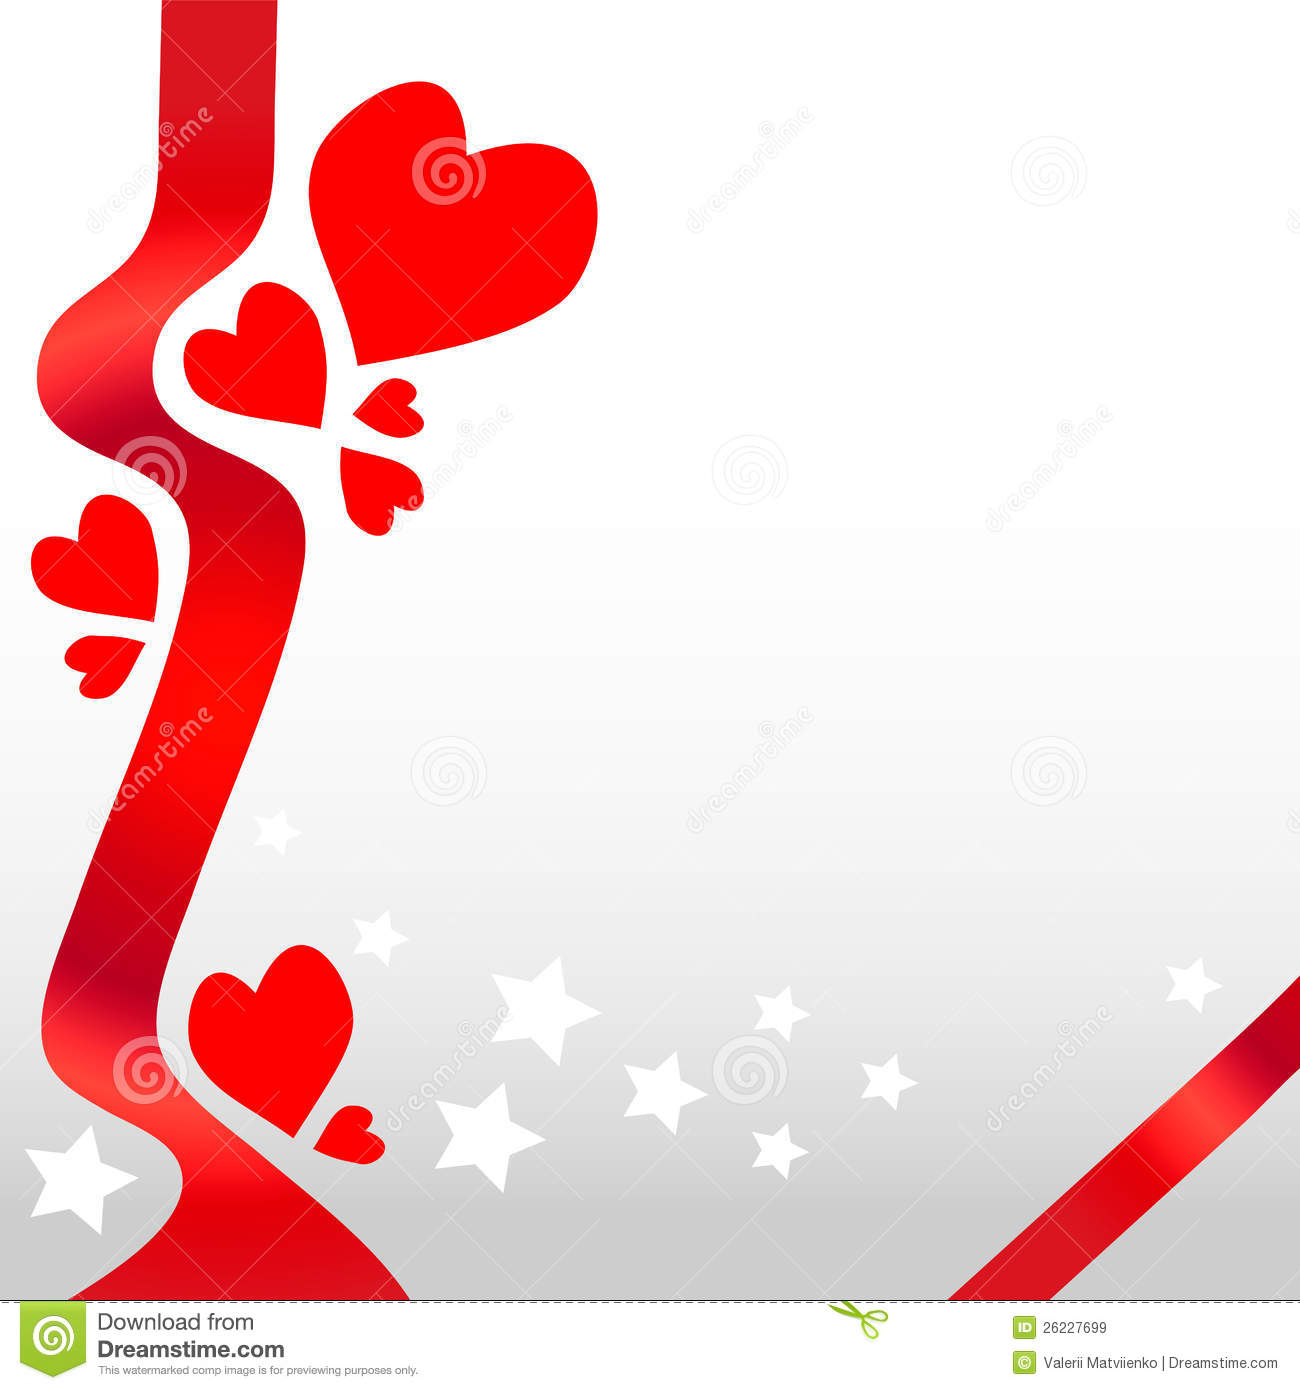 Royalty free stock images valentine 39 s day card design for Designs for valentine cards